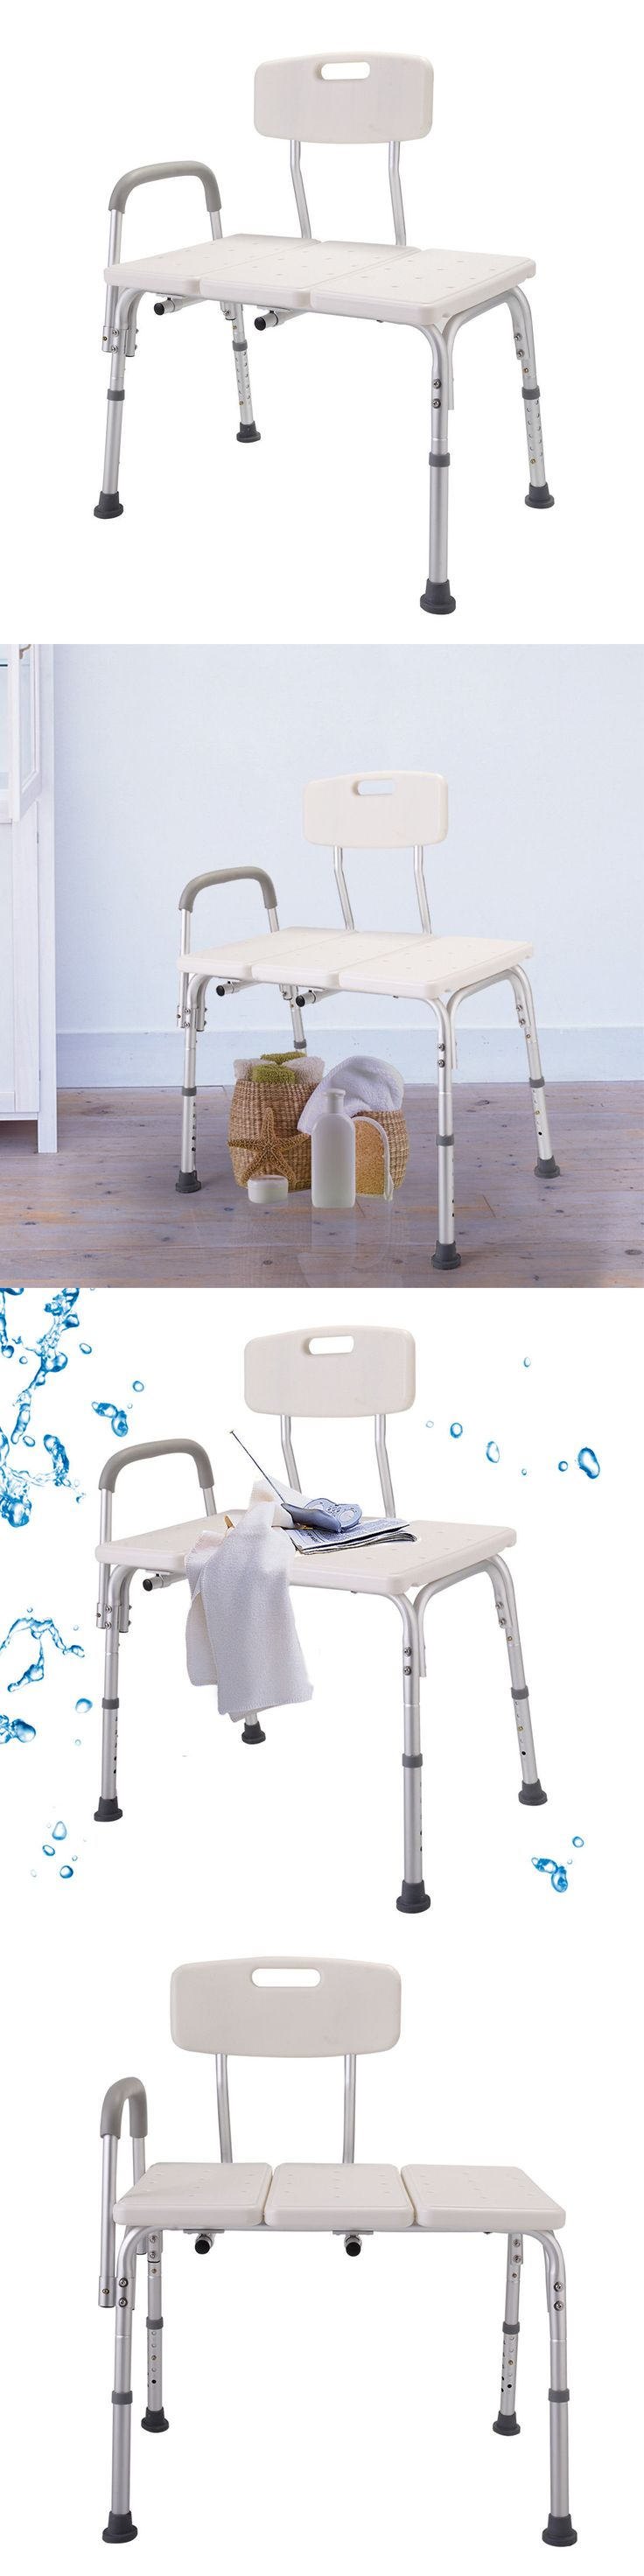 Shower and Bath Seats: Shower Chair 10 Height Adjustable Bathtub Medical Shower Transfer Bench Bath -> BUY IT NOW ONLY: $36.99 on eBay!